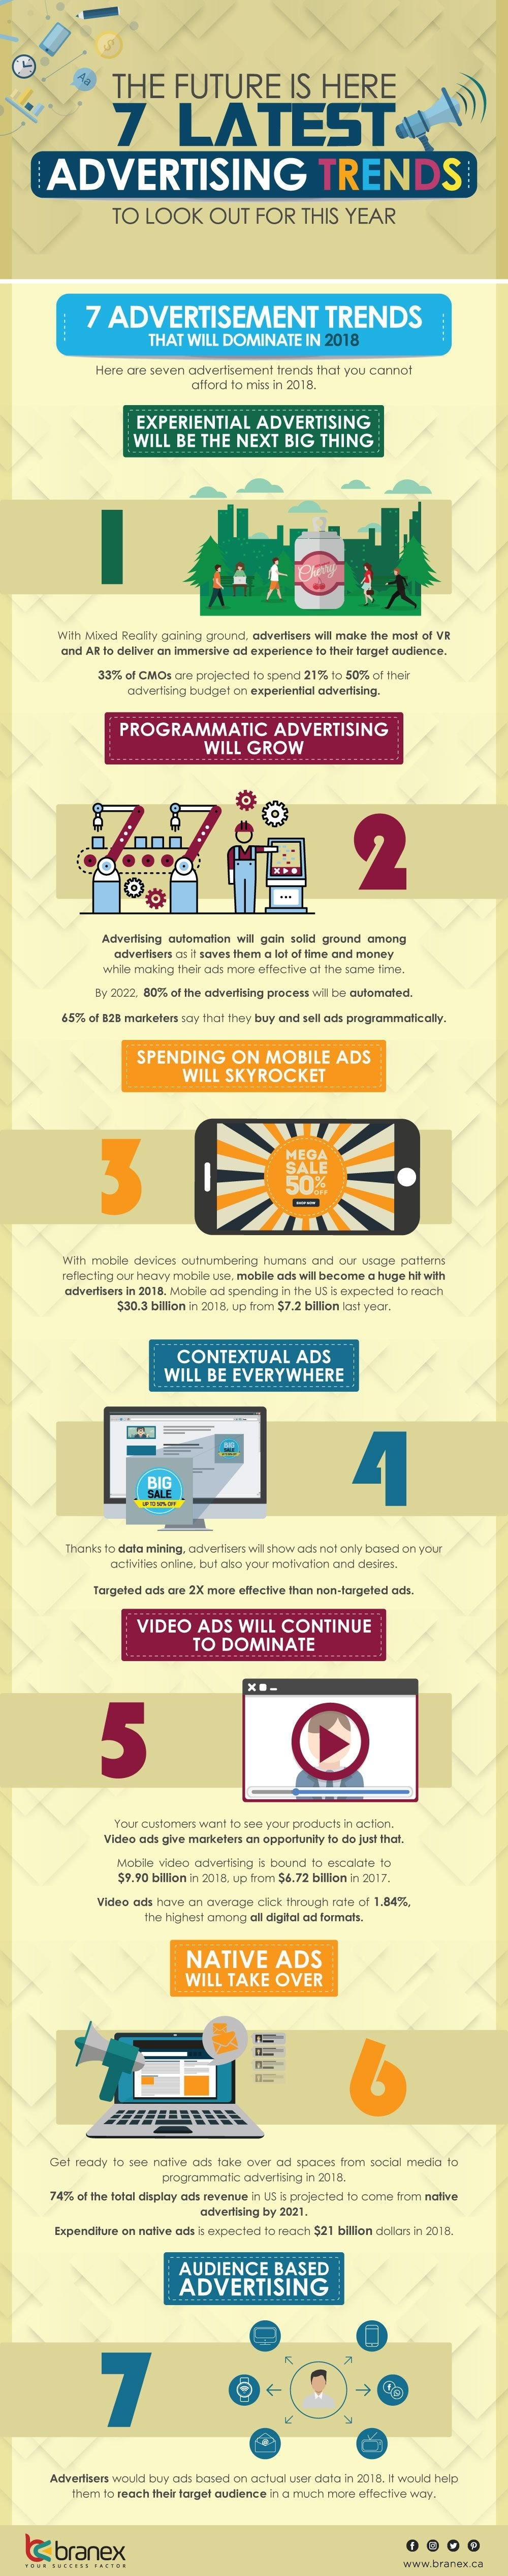 7 Advertising Trends to Look Out for in 2018 [Infographic] | Social Media Today